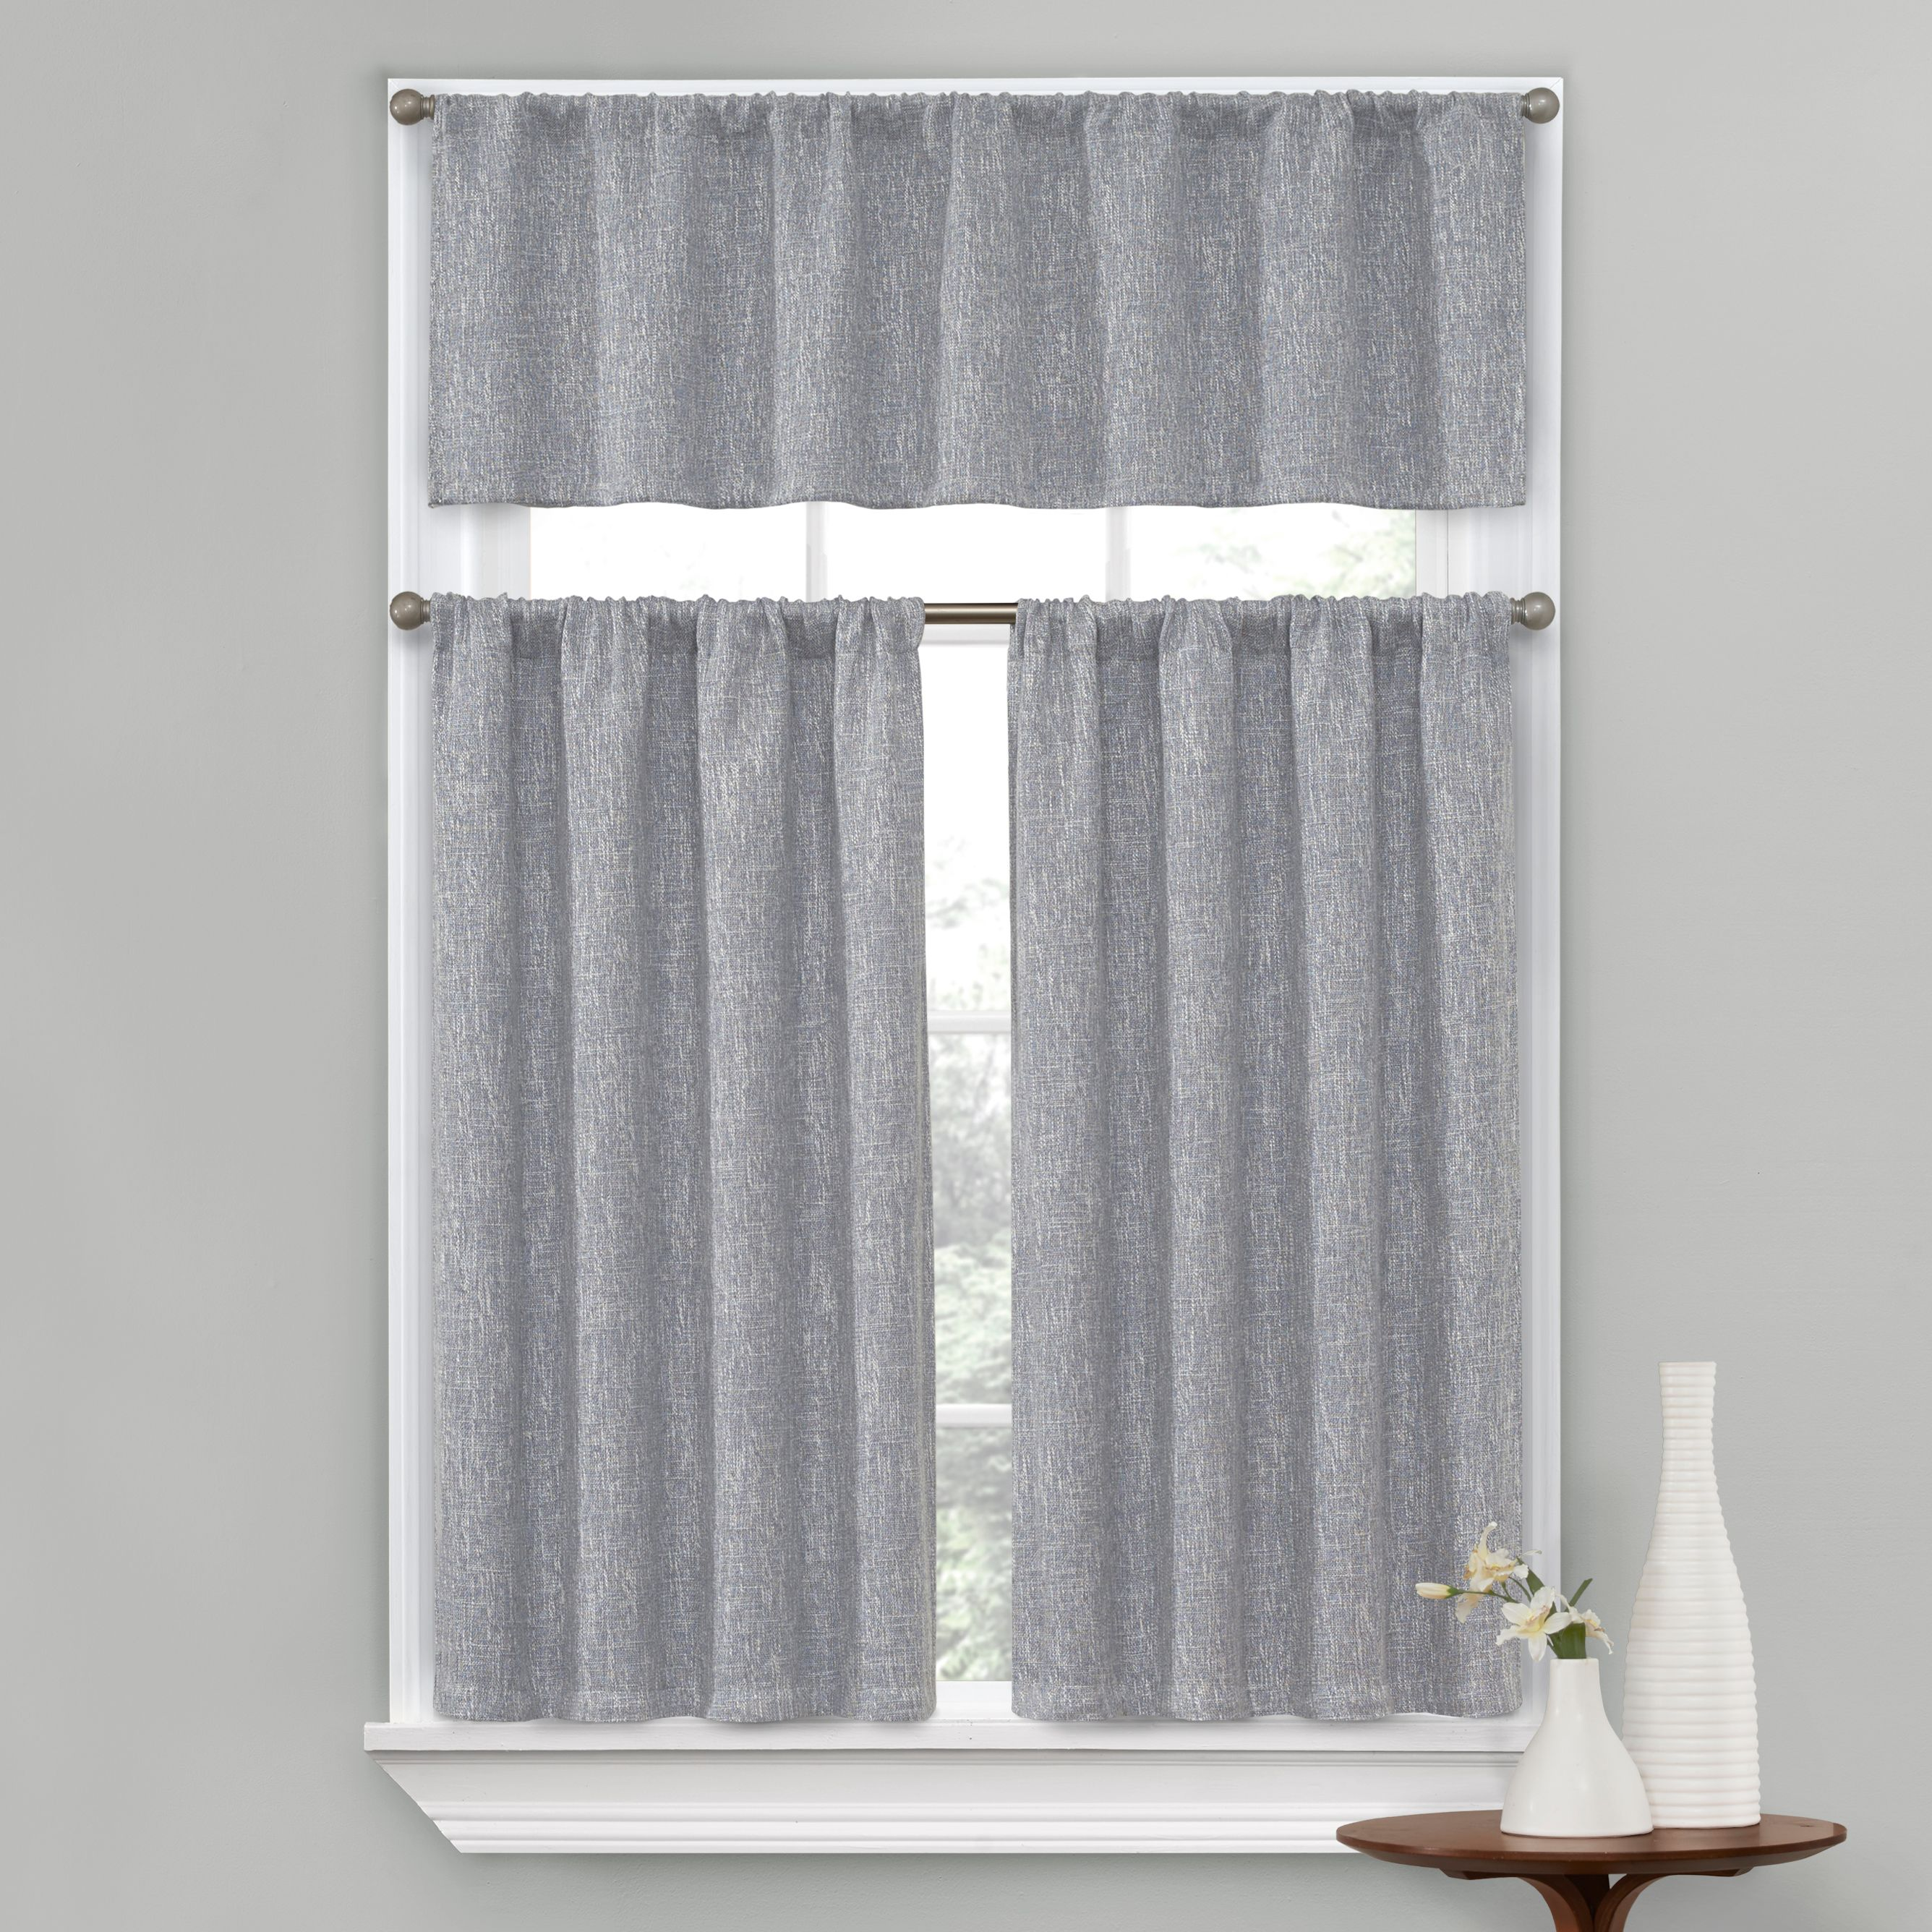 Better Homes And Gardens, Peyton Kitchen Curtain, Set Of 3